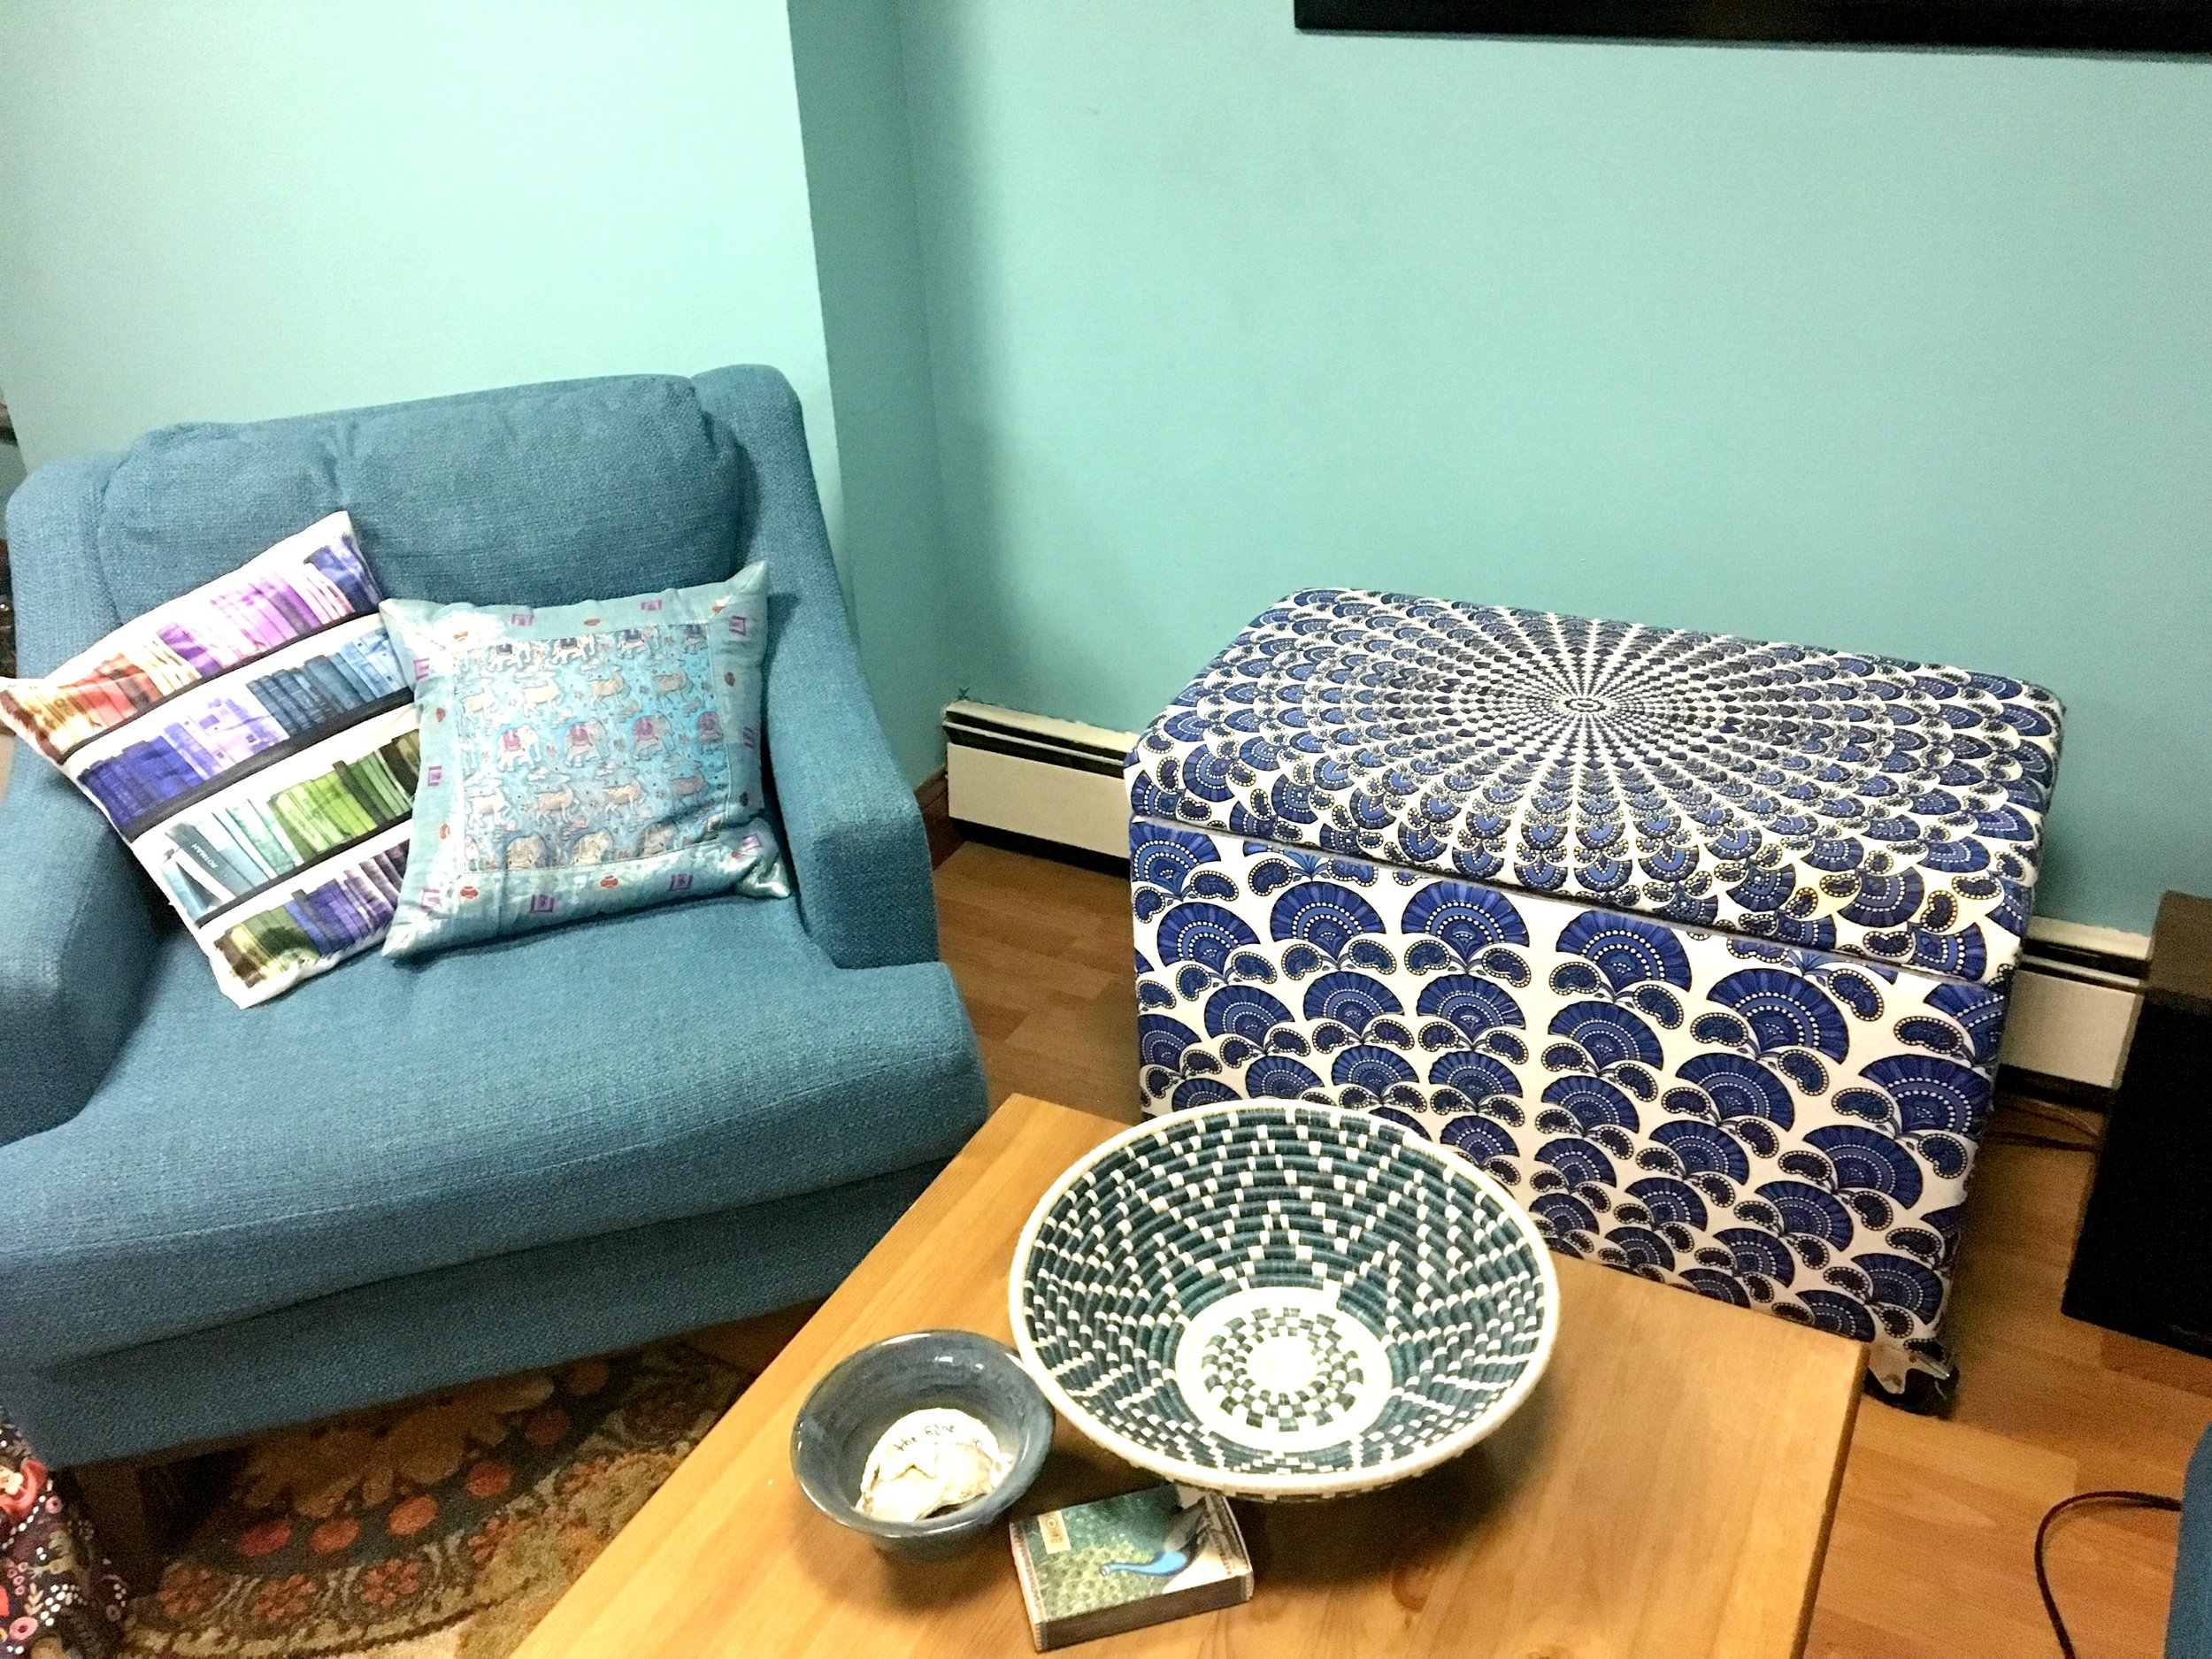 We can help with almost any project! - Seriously our student made this ottoman from start to finish.